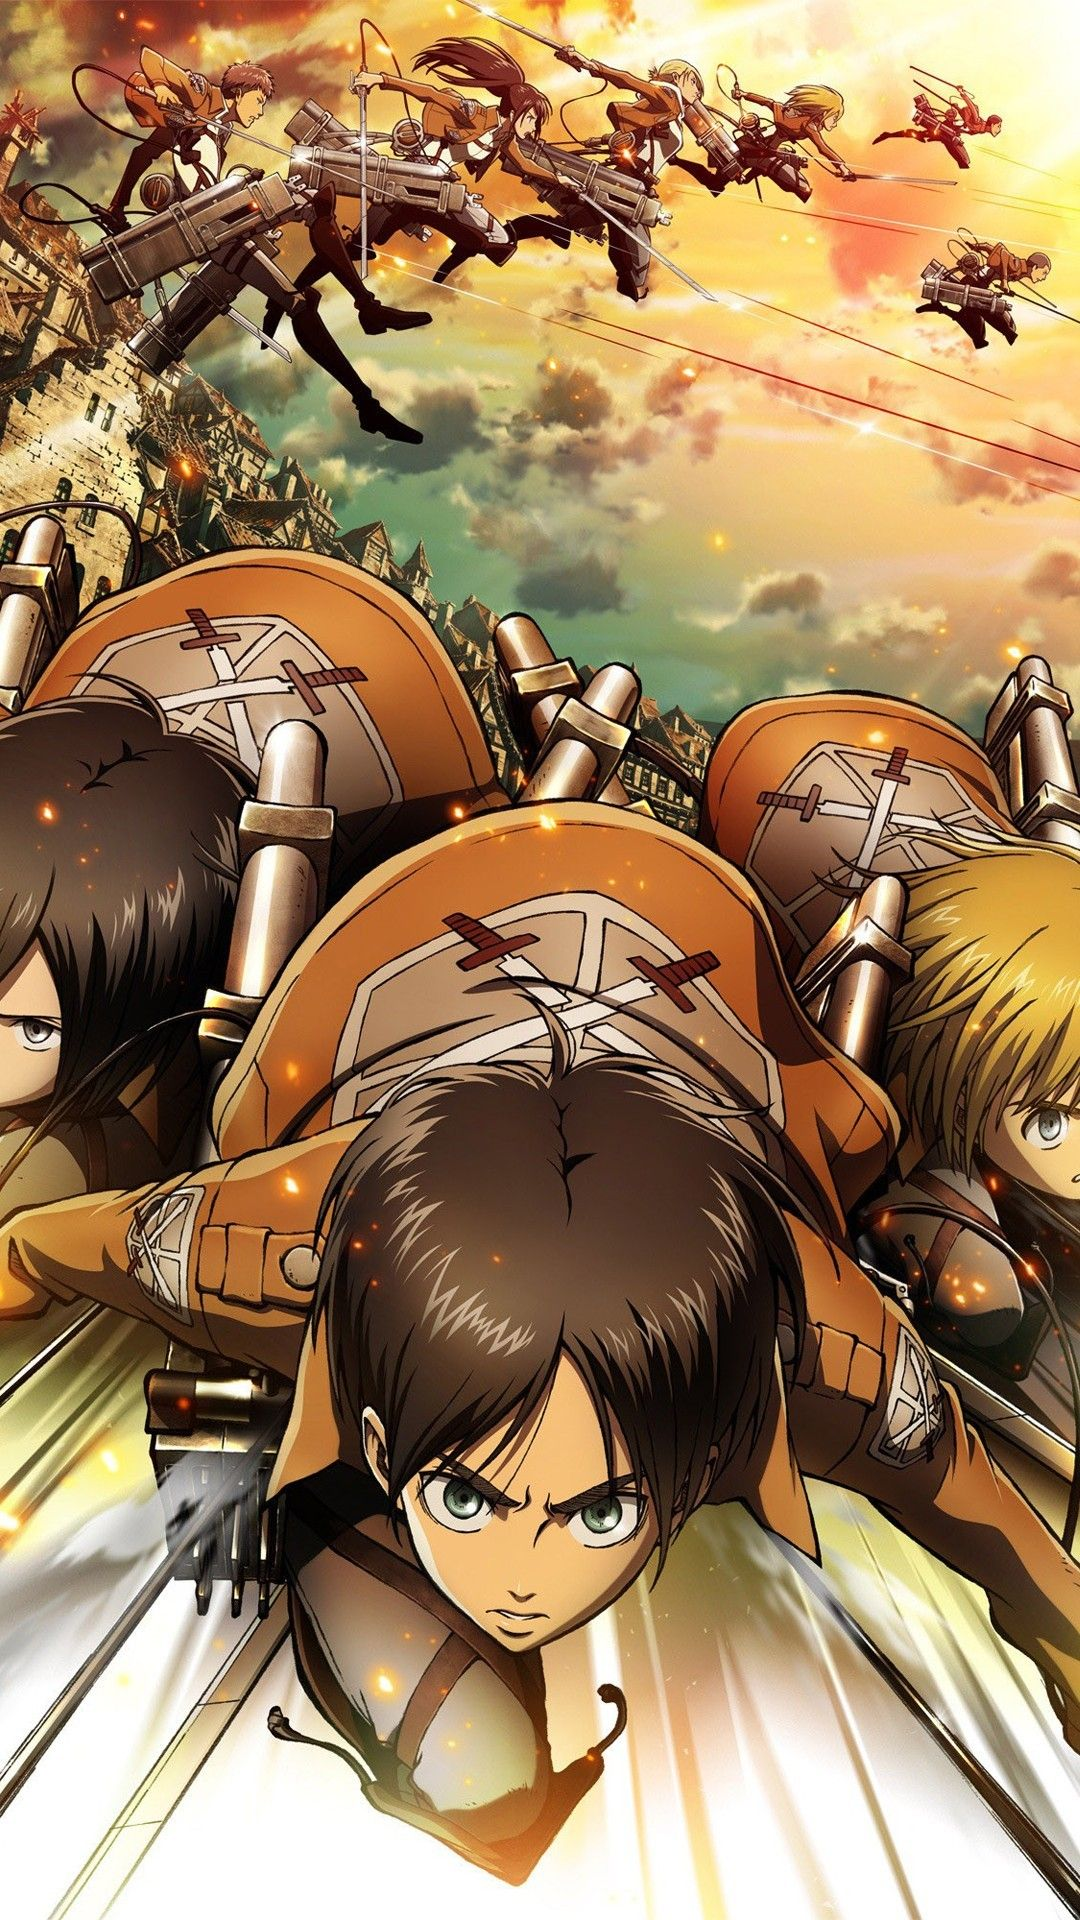 Yuriko nakao/getty images attack on titan is a popular anime series that has also spawned movies and video games. Attack On Titan iPhone Wallpapers - Top Free Attack On ...